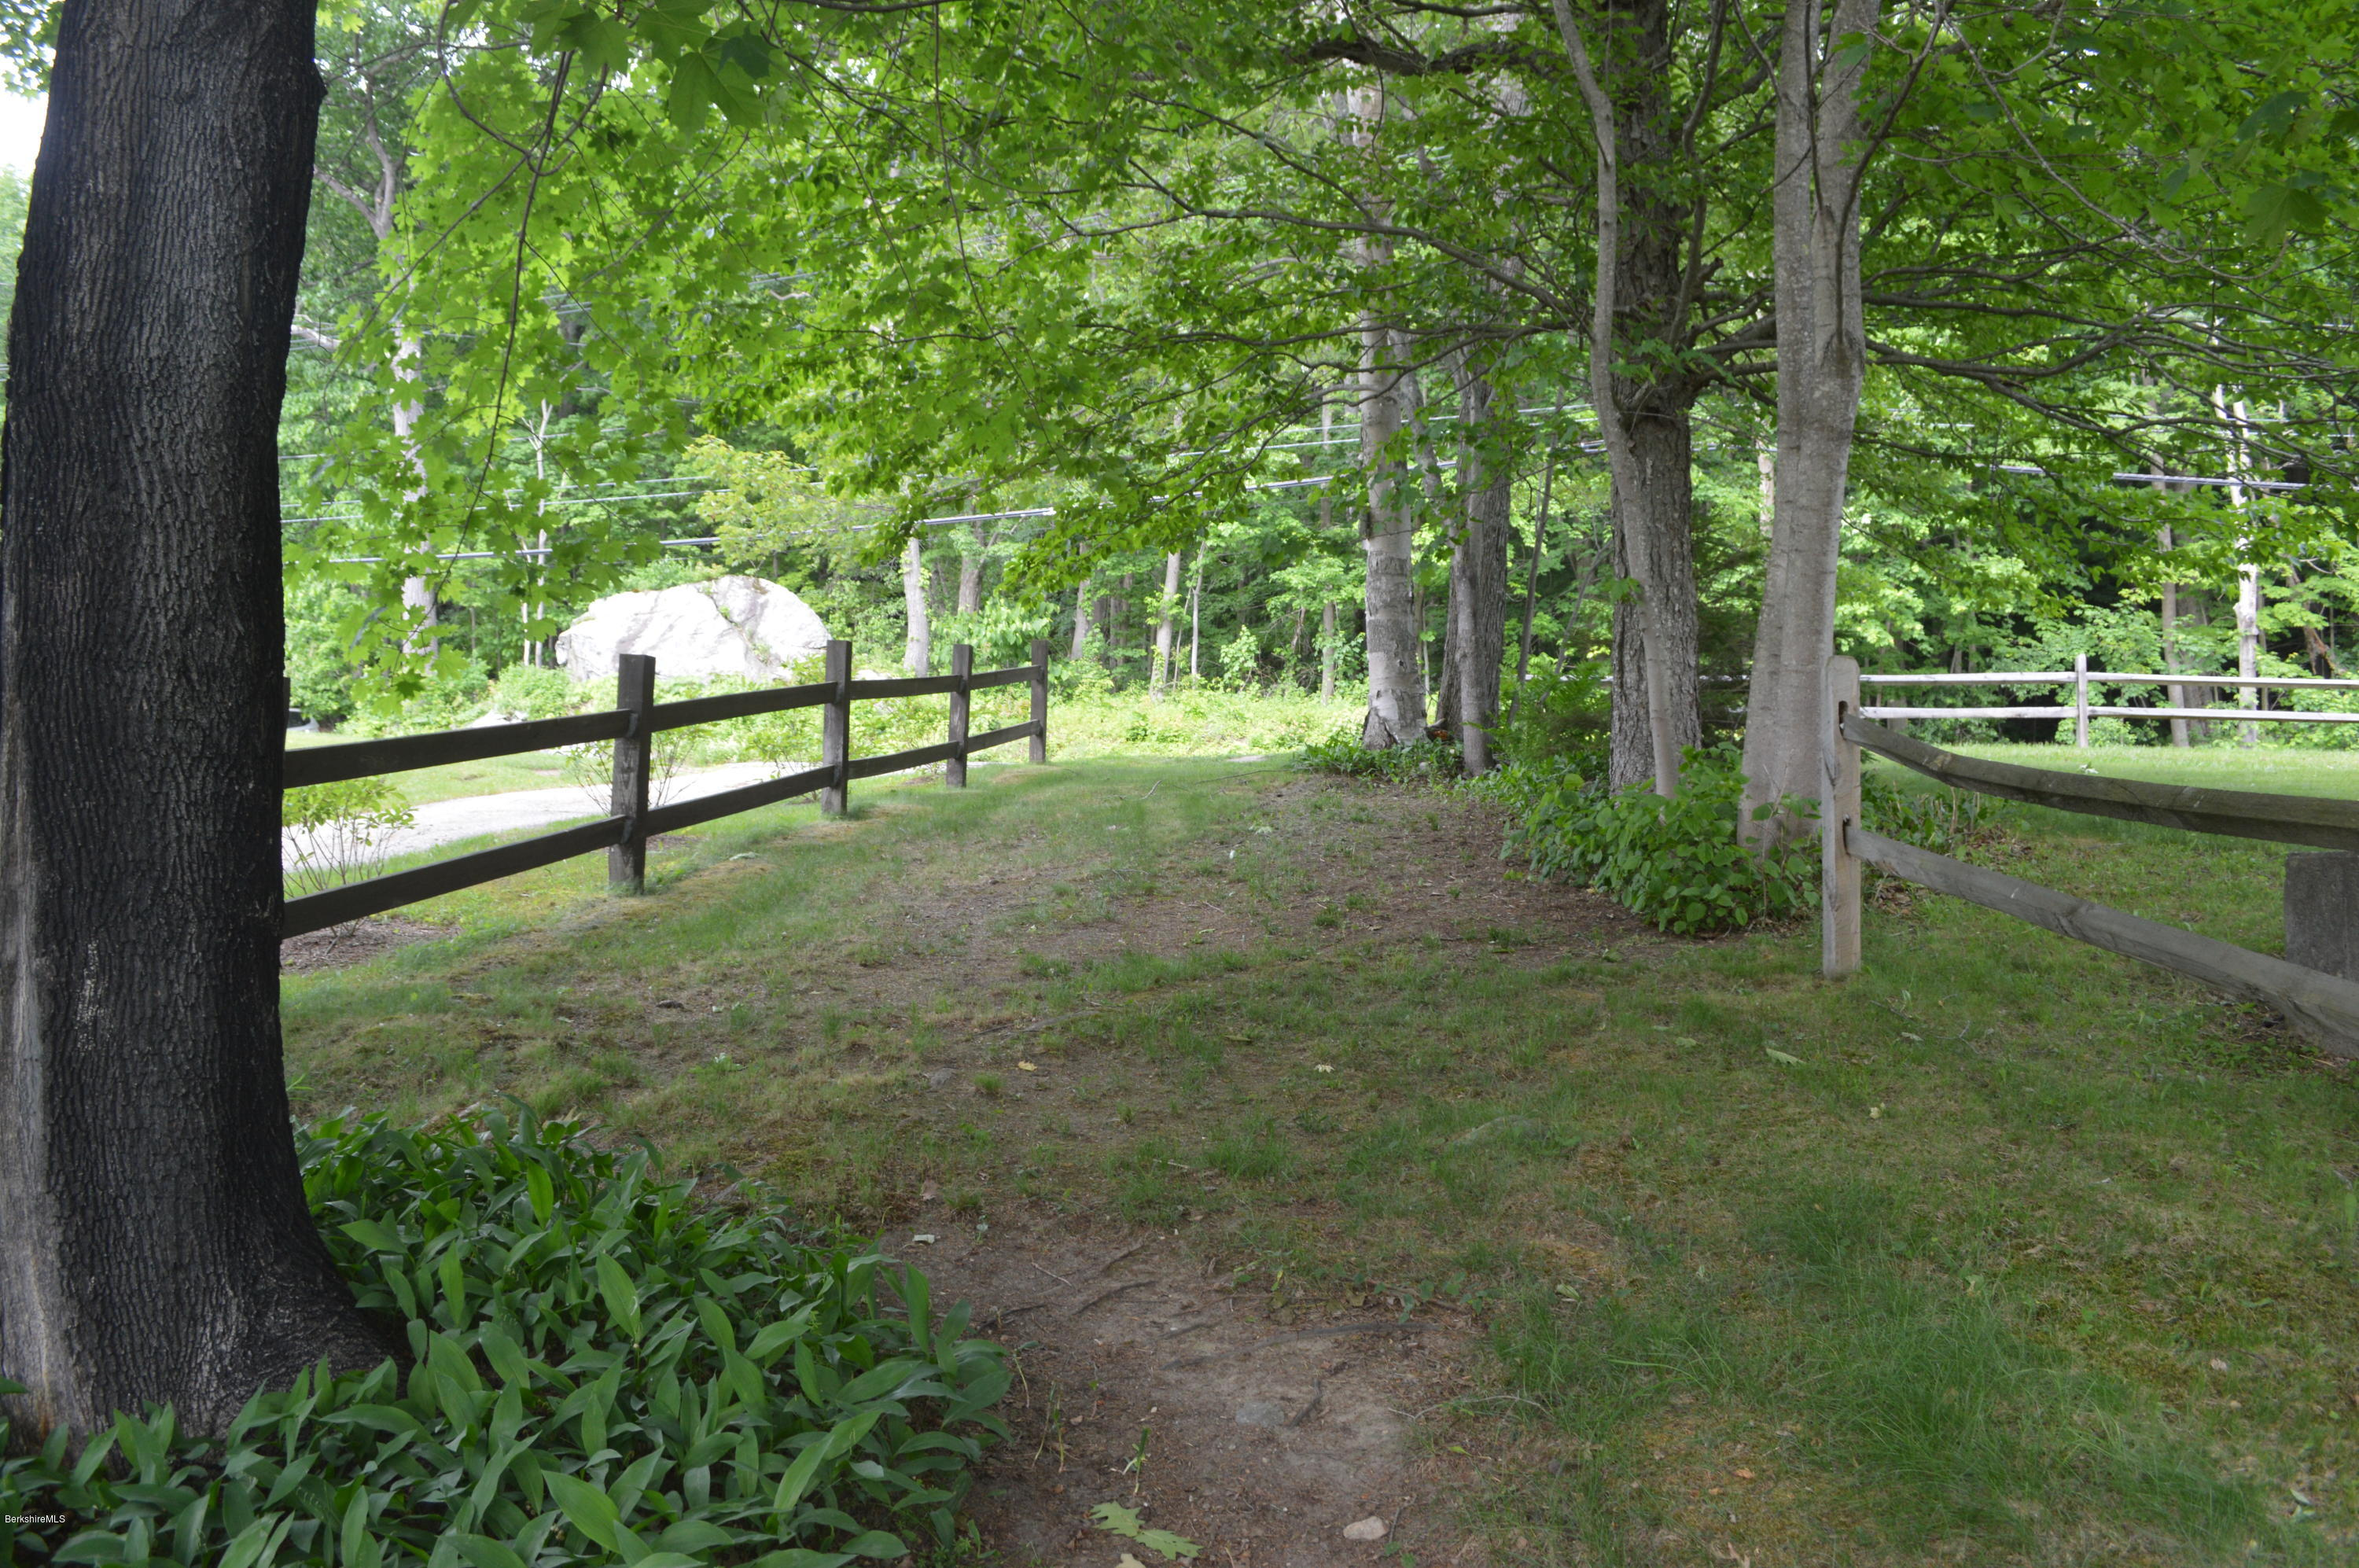 3512 Jacobs Ladder Rd Becket Ma 01223 Mls 223540 Berkshire Printed Circuit Board Property Description